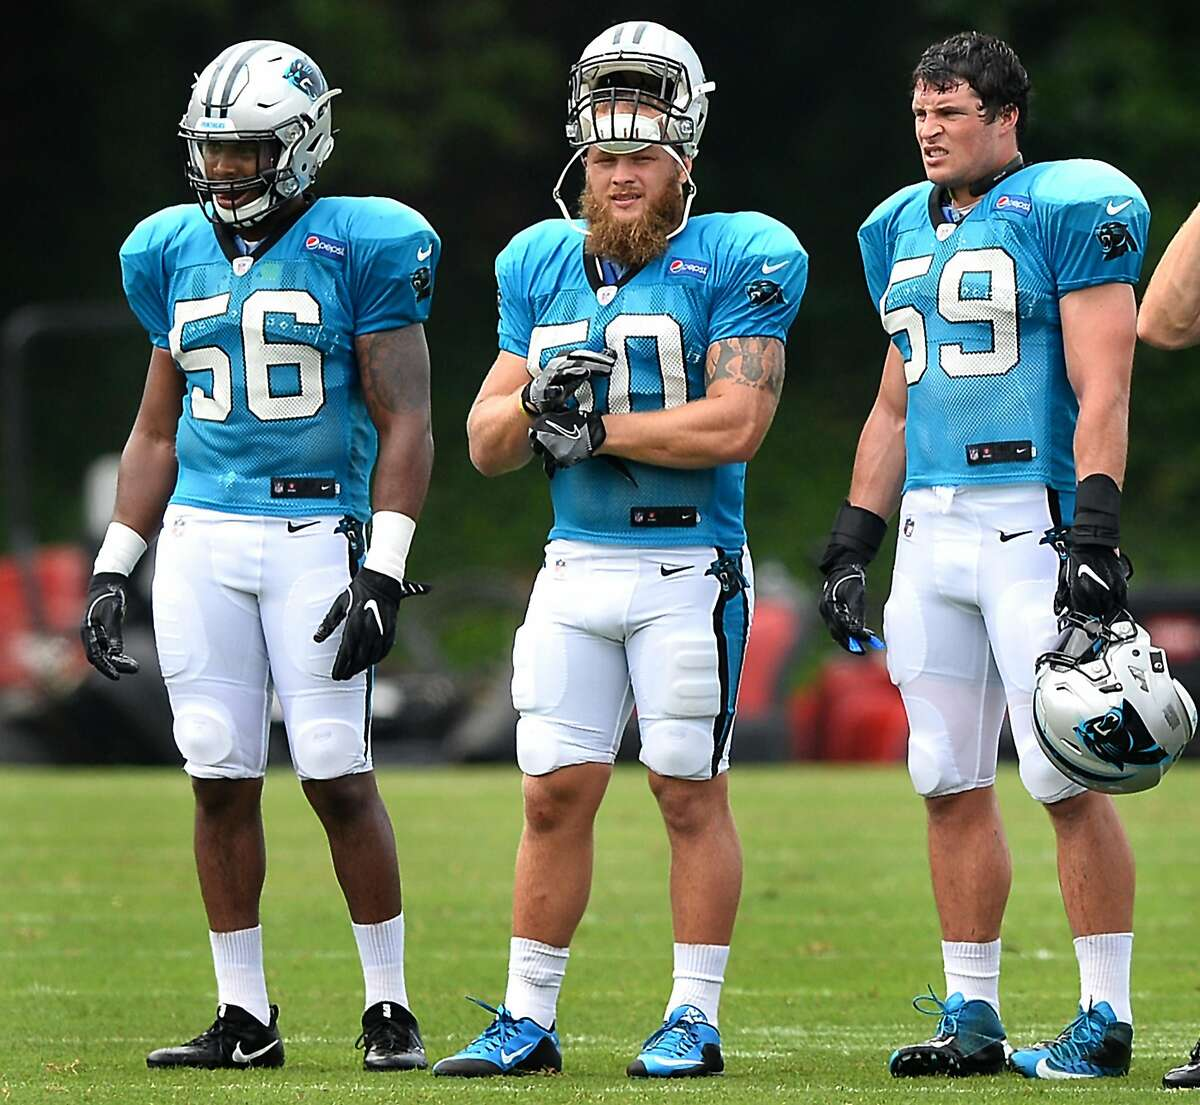 Carolina Panthers linebackers Zeke Bigger, left, Ben Boulware, center and Luke Kuechly, right, watch the team run through drills during practice on Friday, July 28, 2017 at Wofford College in Spartanburg, S.C. (Jeff Siner/Charlotte Observer/TNS)